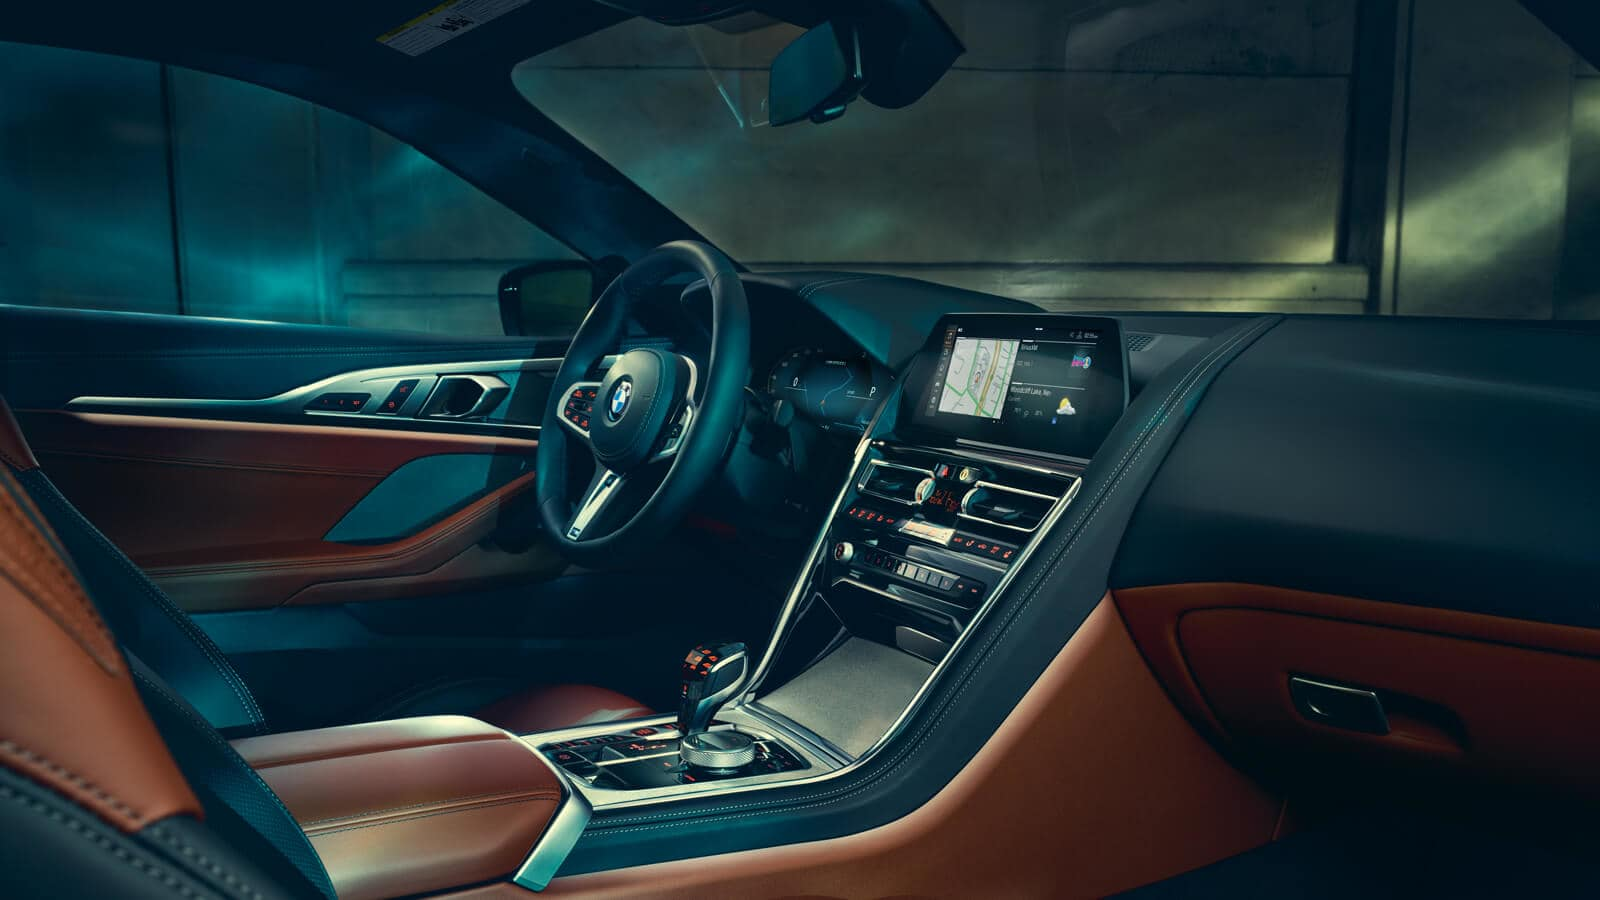 Interior of the 2019 BMW 8 Series